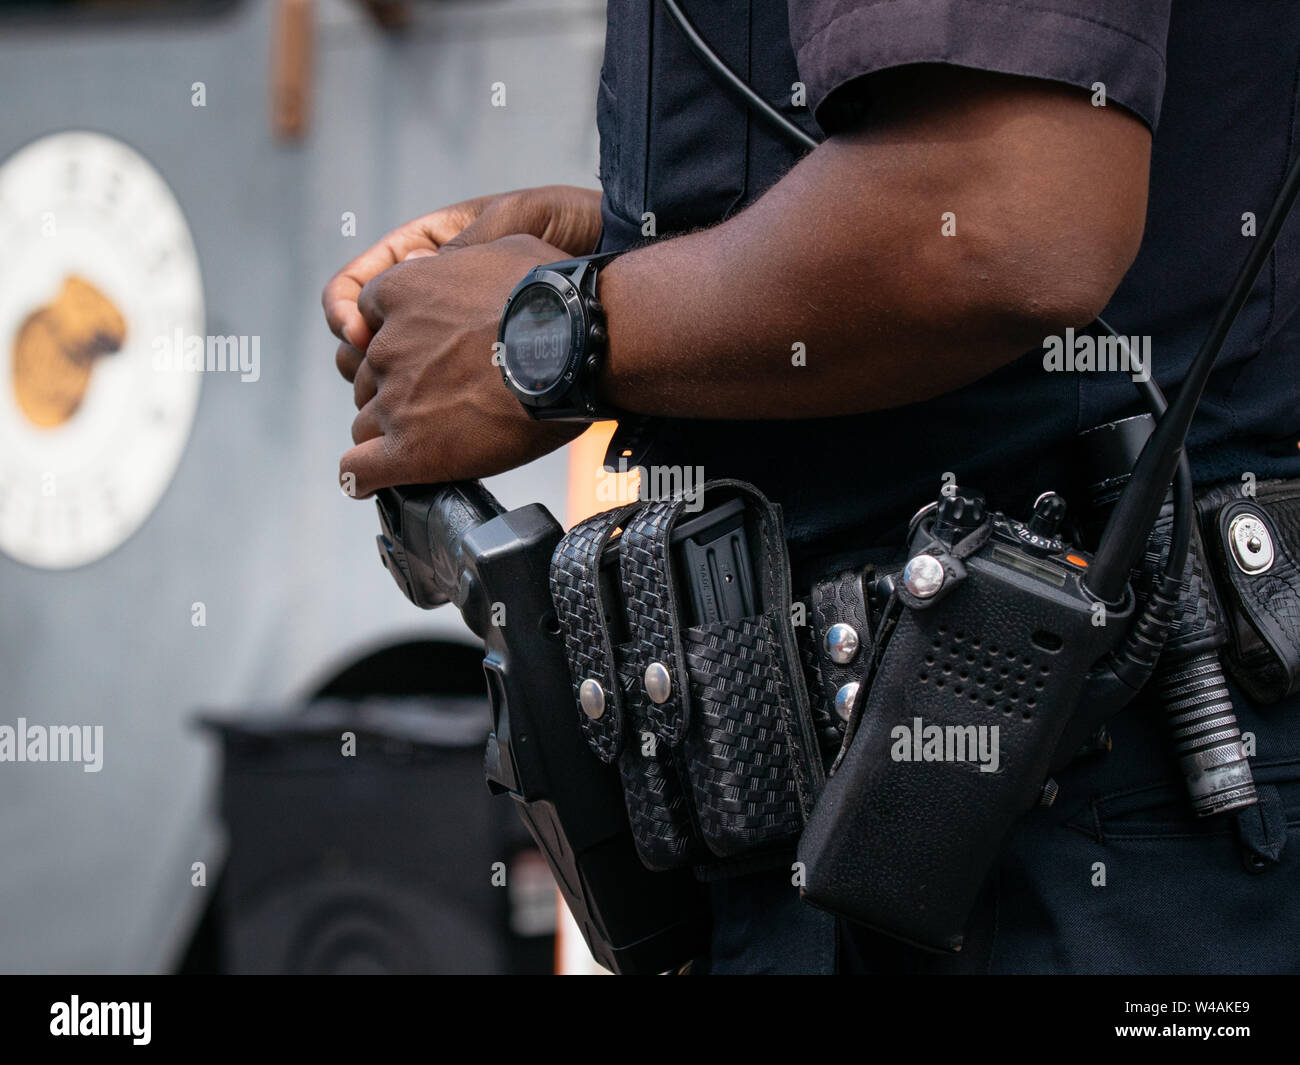 Police Tools Stock Photos & Police Tools Stock Images - Alamy